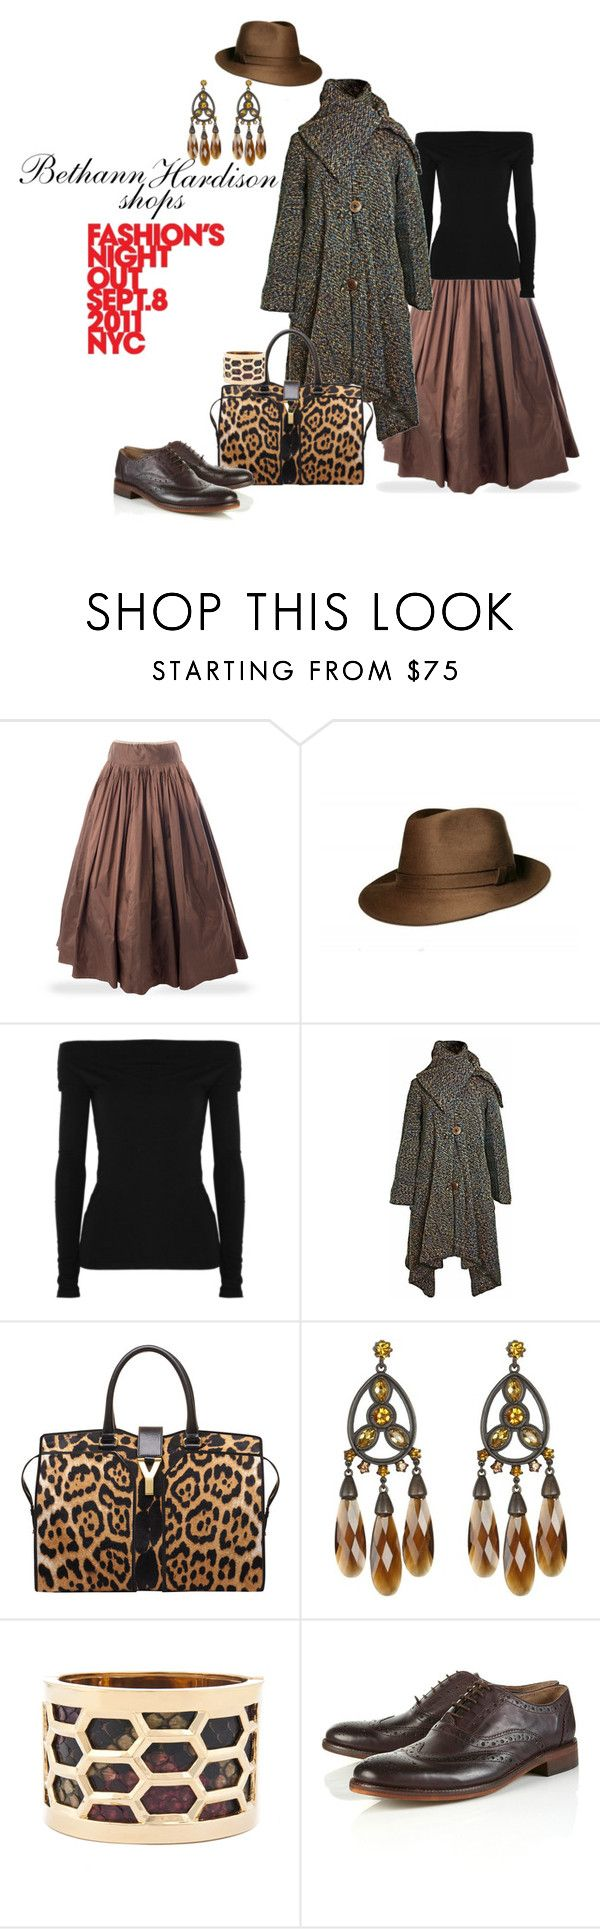 """Bethann Hardison shops FNO"" by sofistafunk ❤ liked on Polyvore featuring James Perse, Luna, Yves Saint Laurent, AllSaints and Topman"